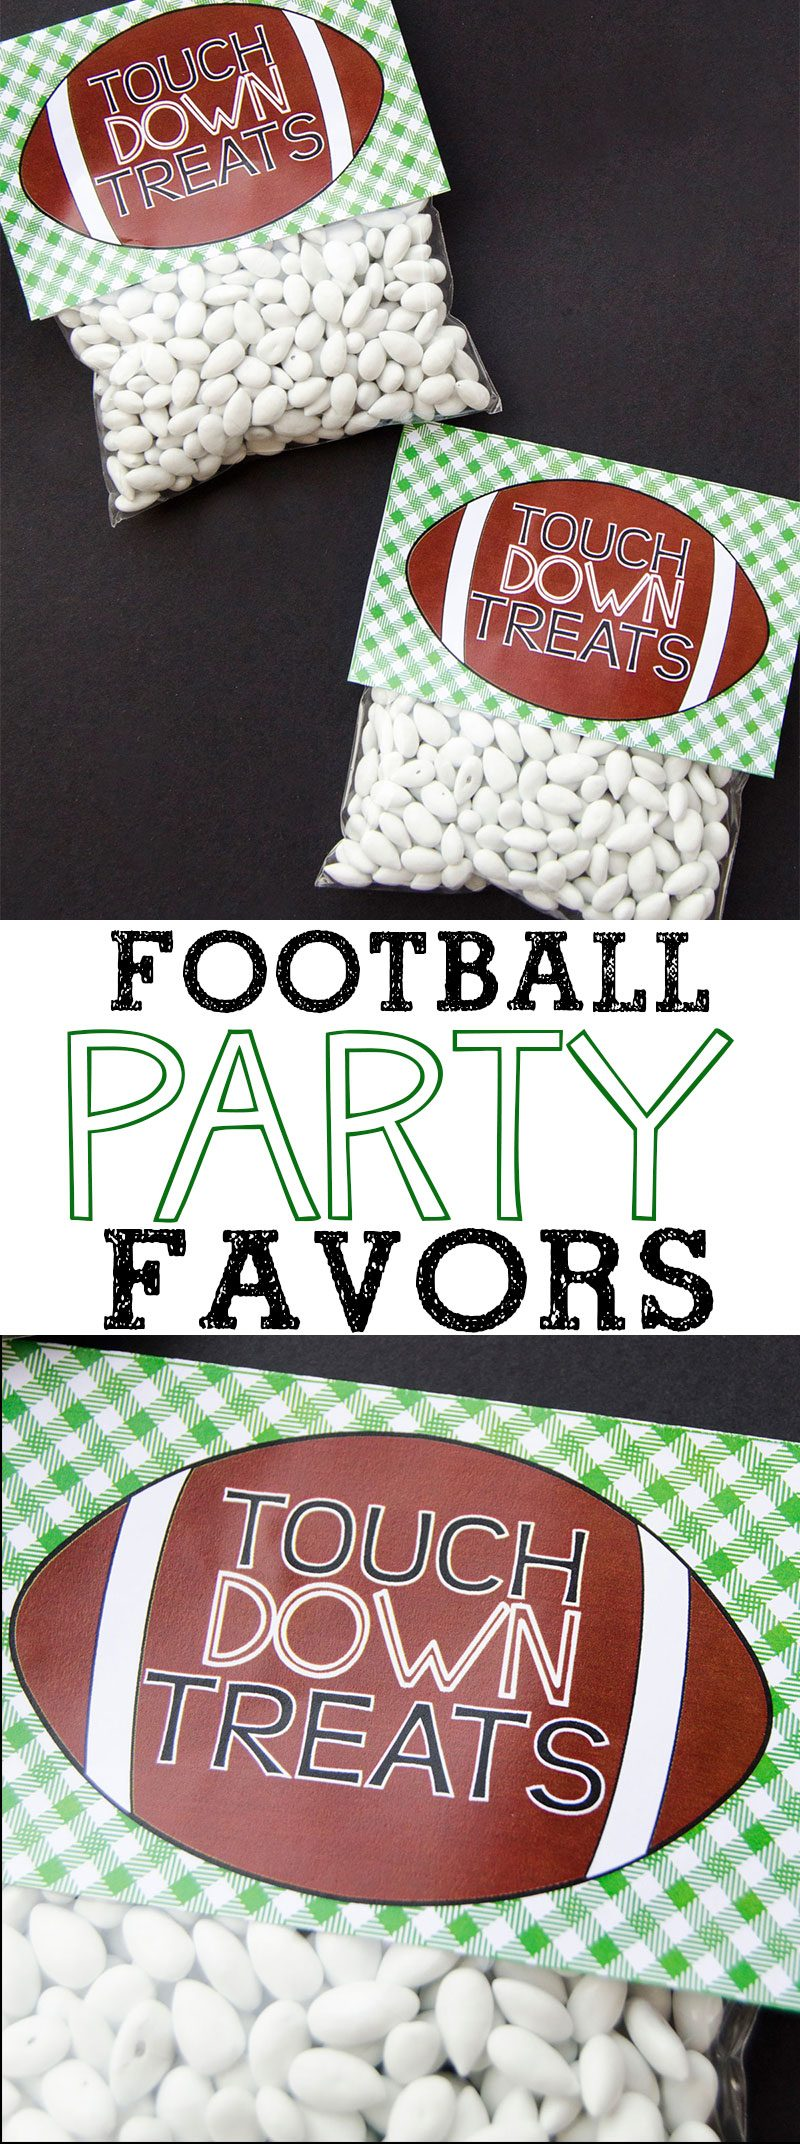 football party favors free printable by lindi haws of love the day